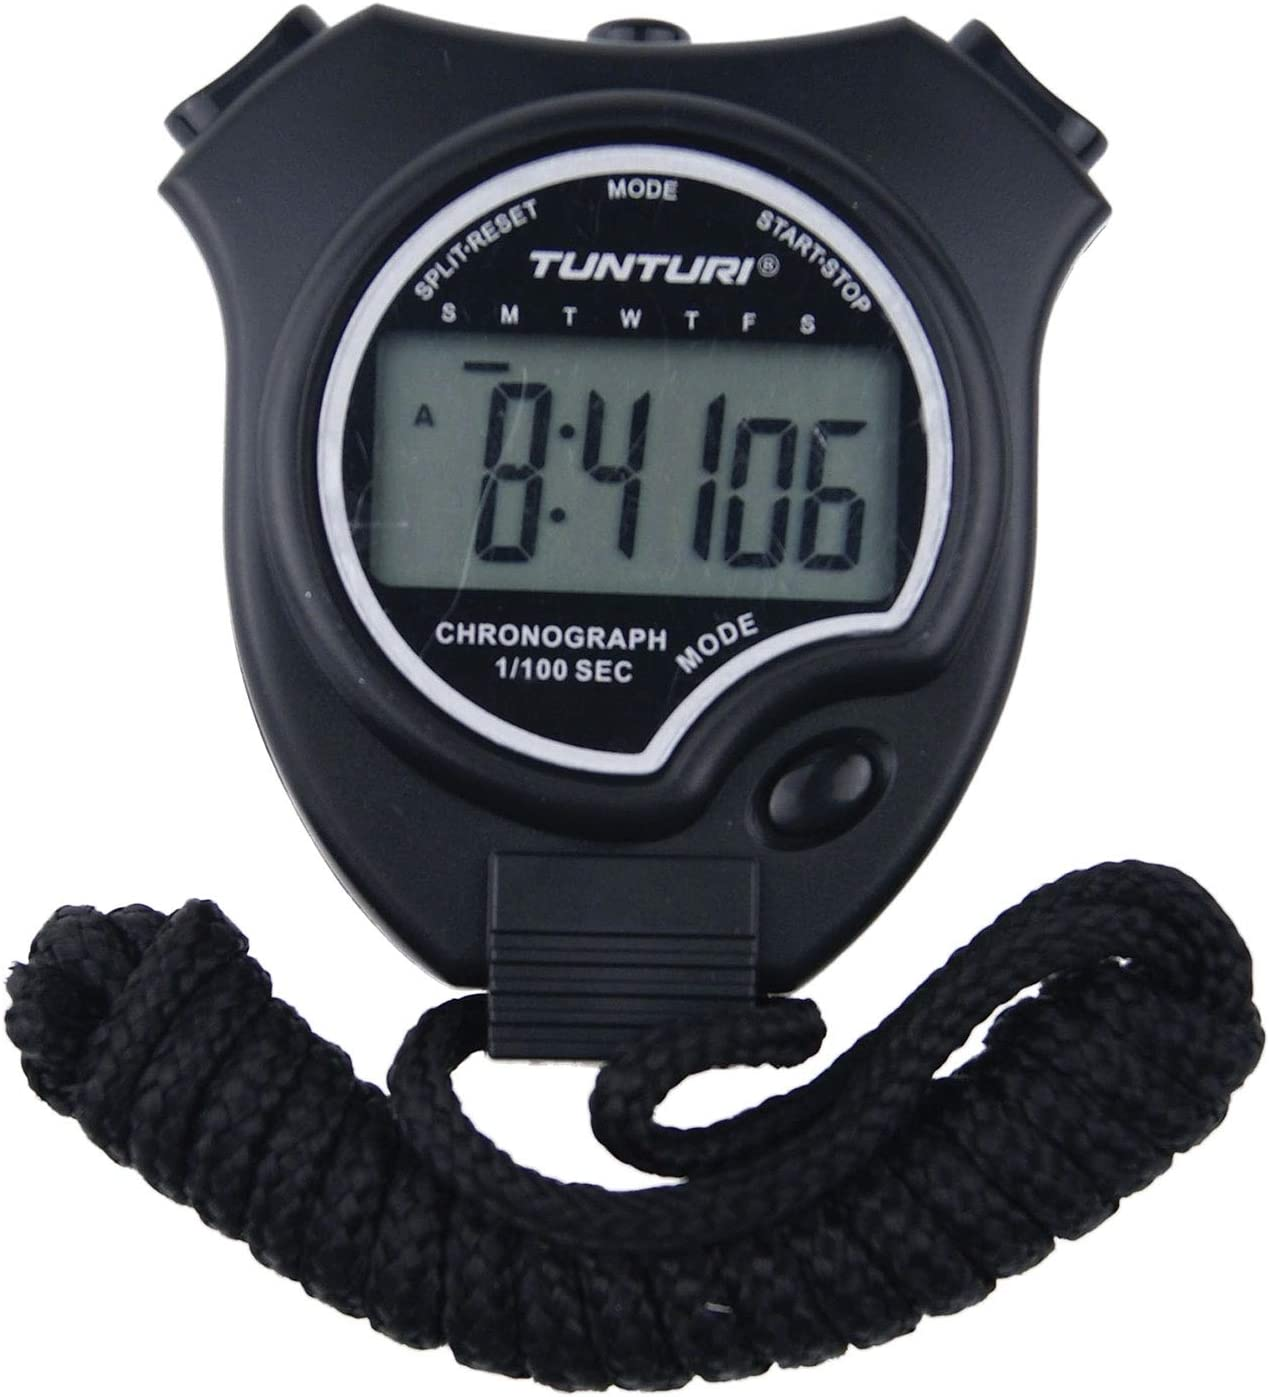 TUNTURI Stopwatch We OFFer at cheap prices Basic Big Display Max 49% OFF